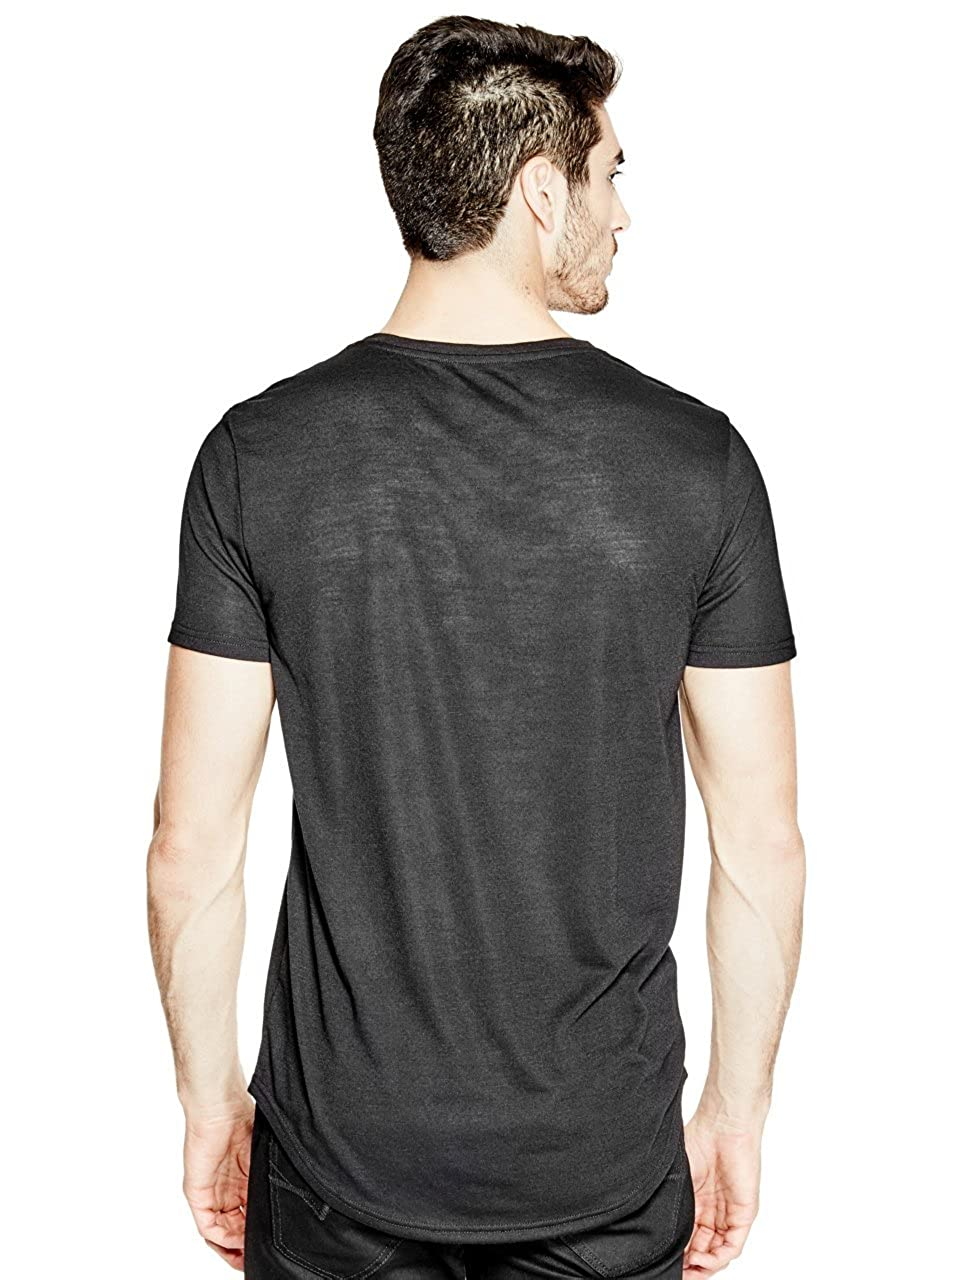 G by GUESS Men s Heathered Knit Pocket Longline Tee  3e0fa0d99ea